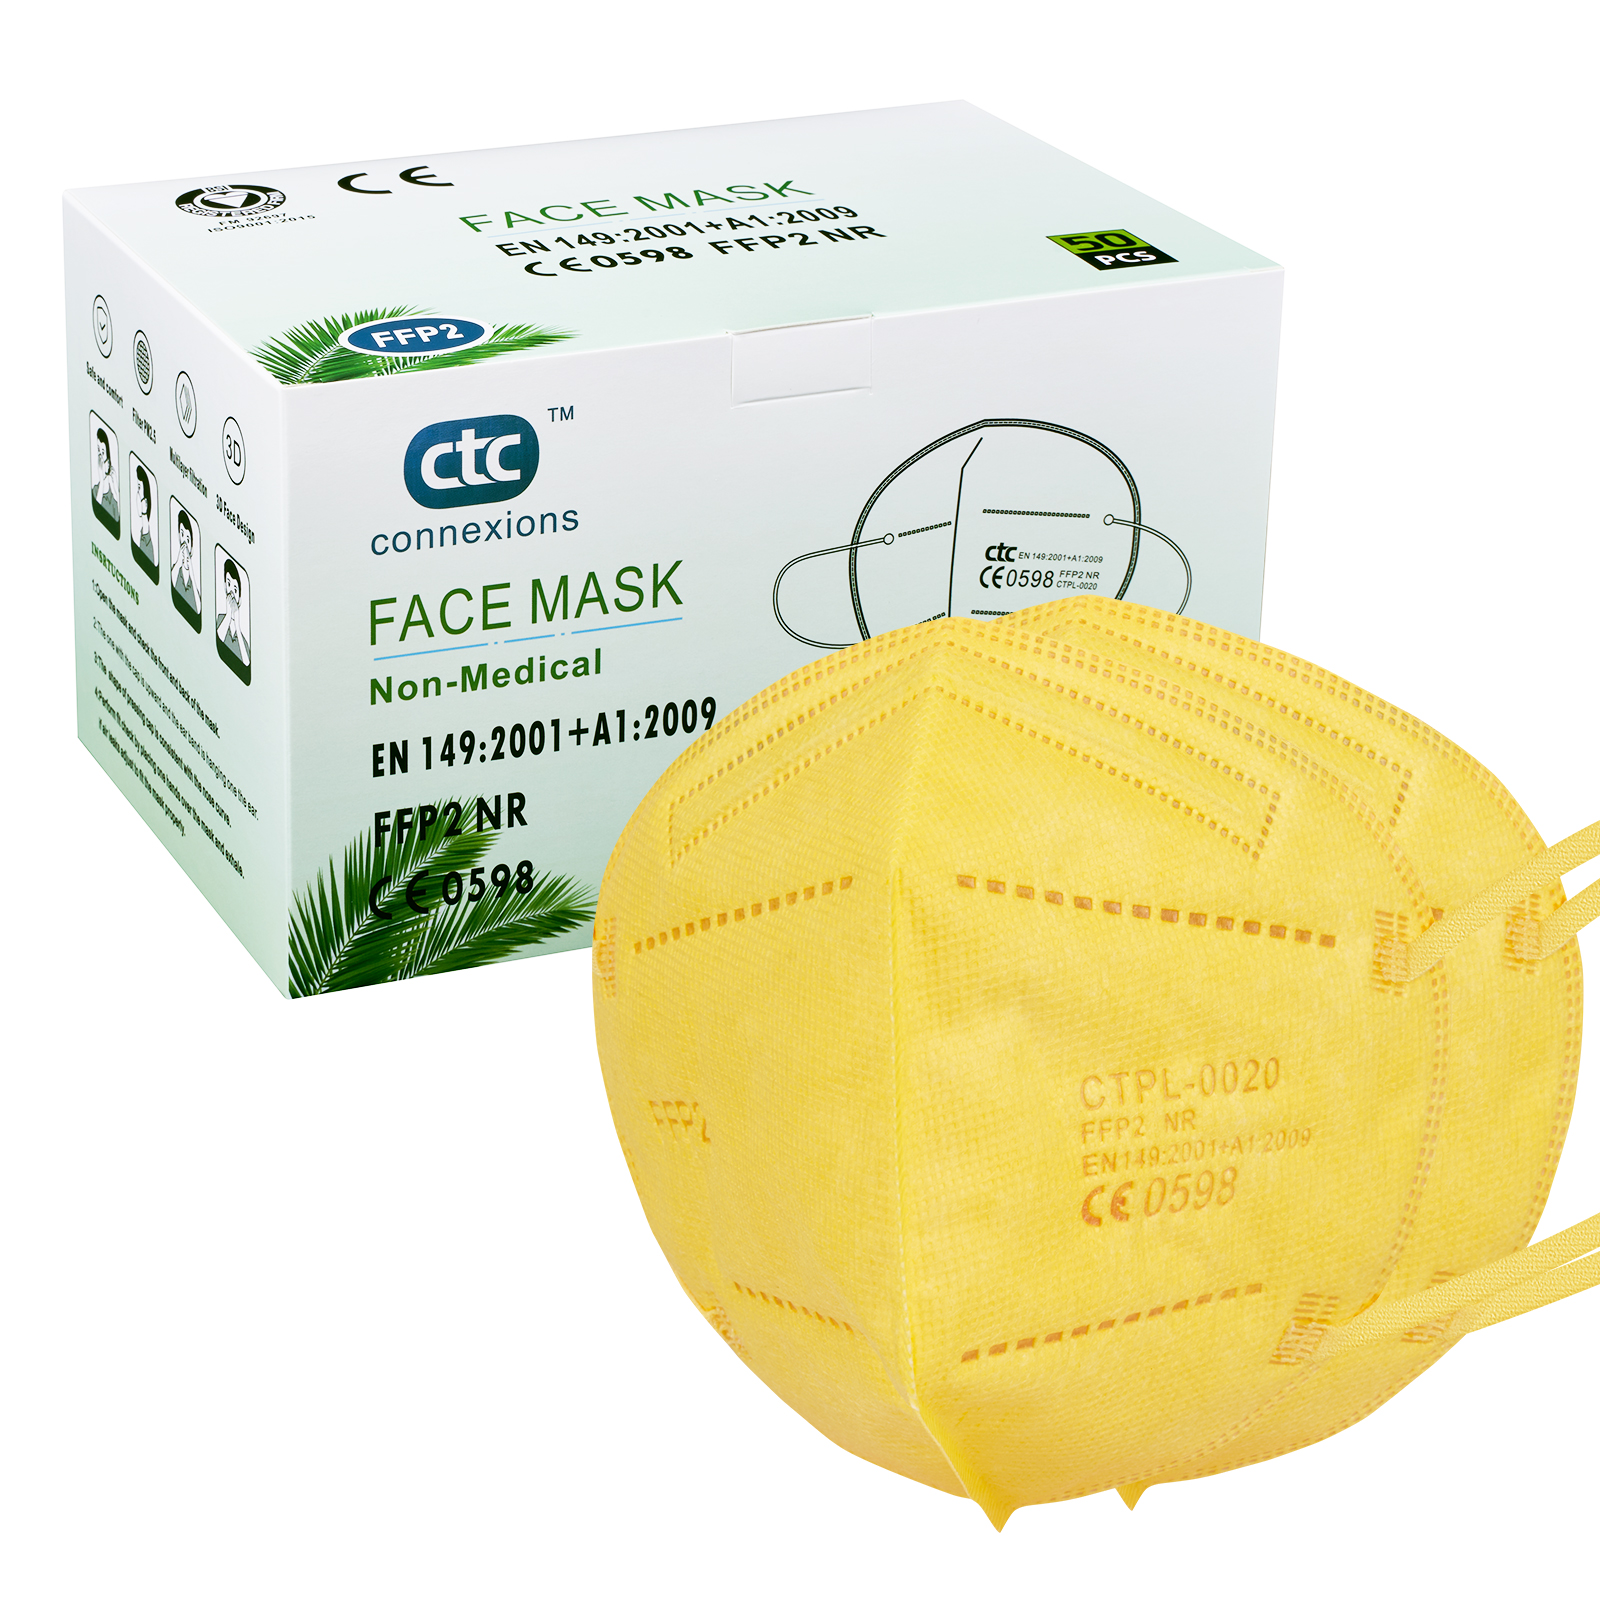 CTPL-0020 FFP2 Respirator Face Mask Yellow Color with CE0598 Certification